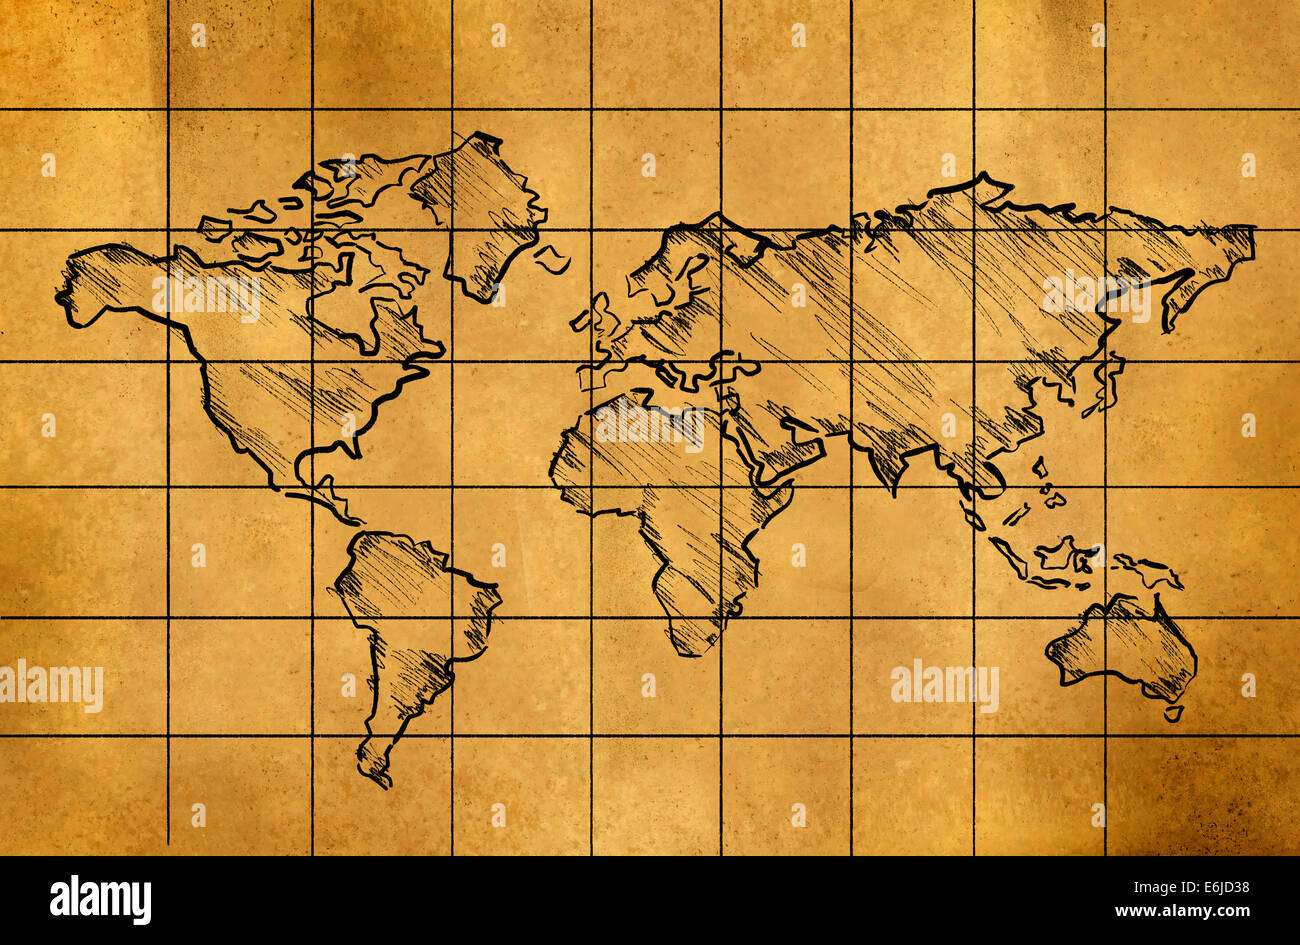 World map sketch on old paper grid art drawing stock photo world map sketch on old paper grid art drawing gumiabroncs Gallery